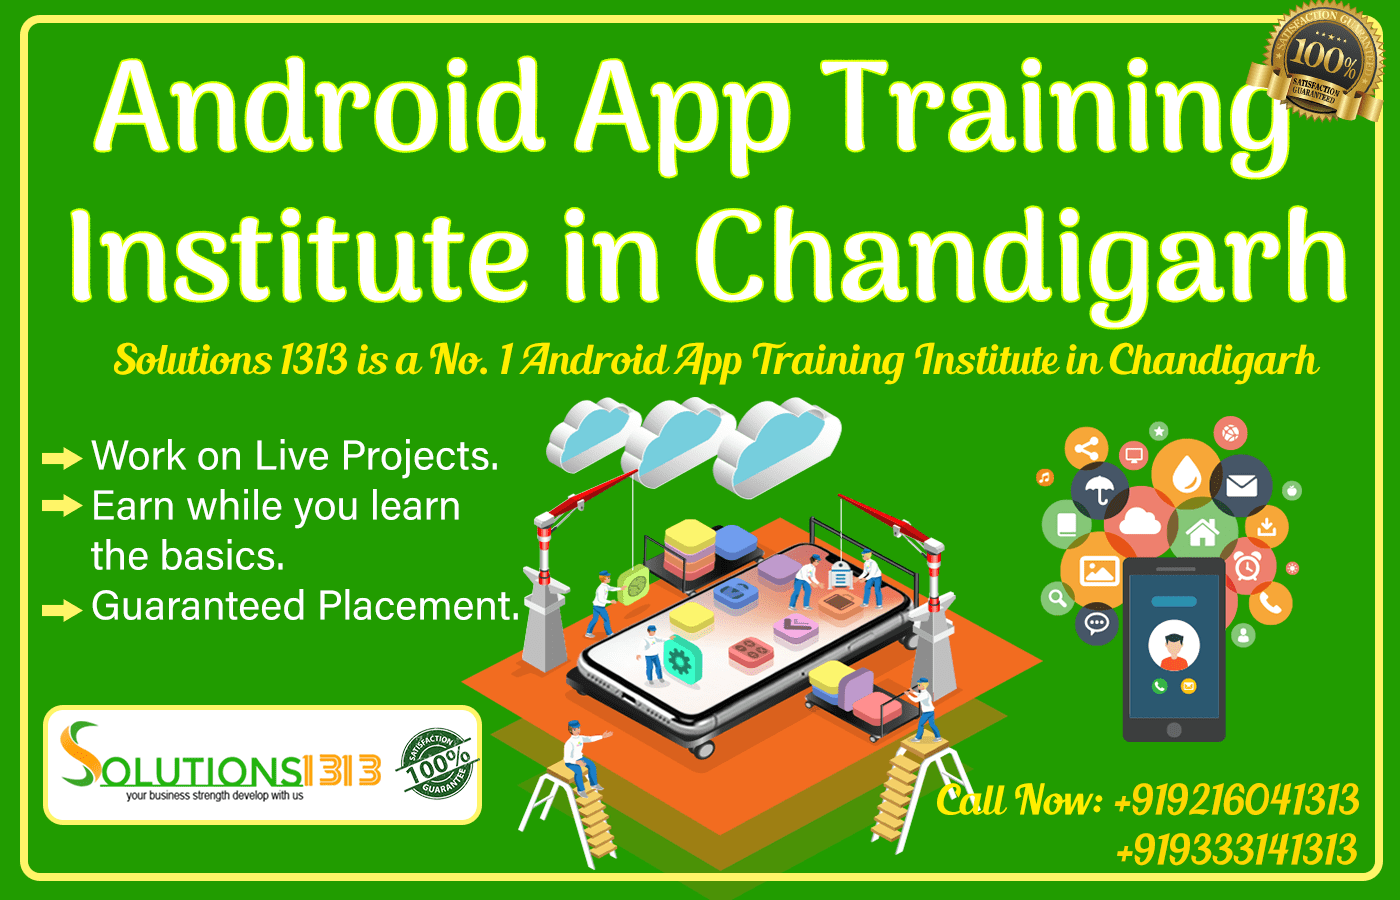 Android App Training Institute in Chandigarh